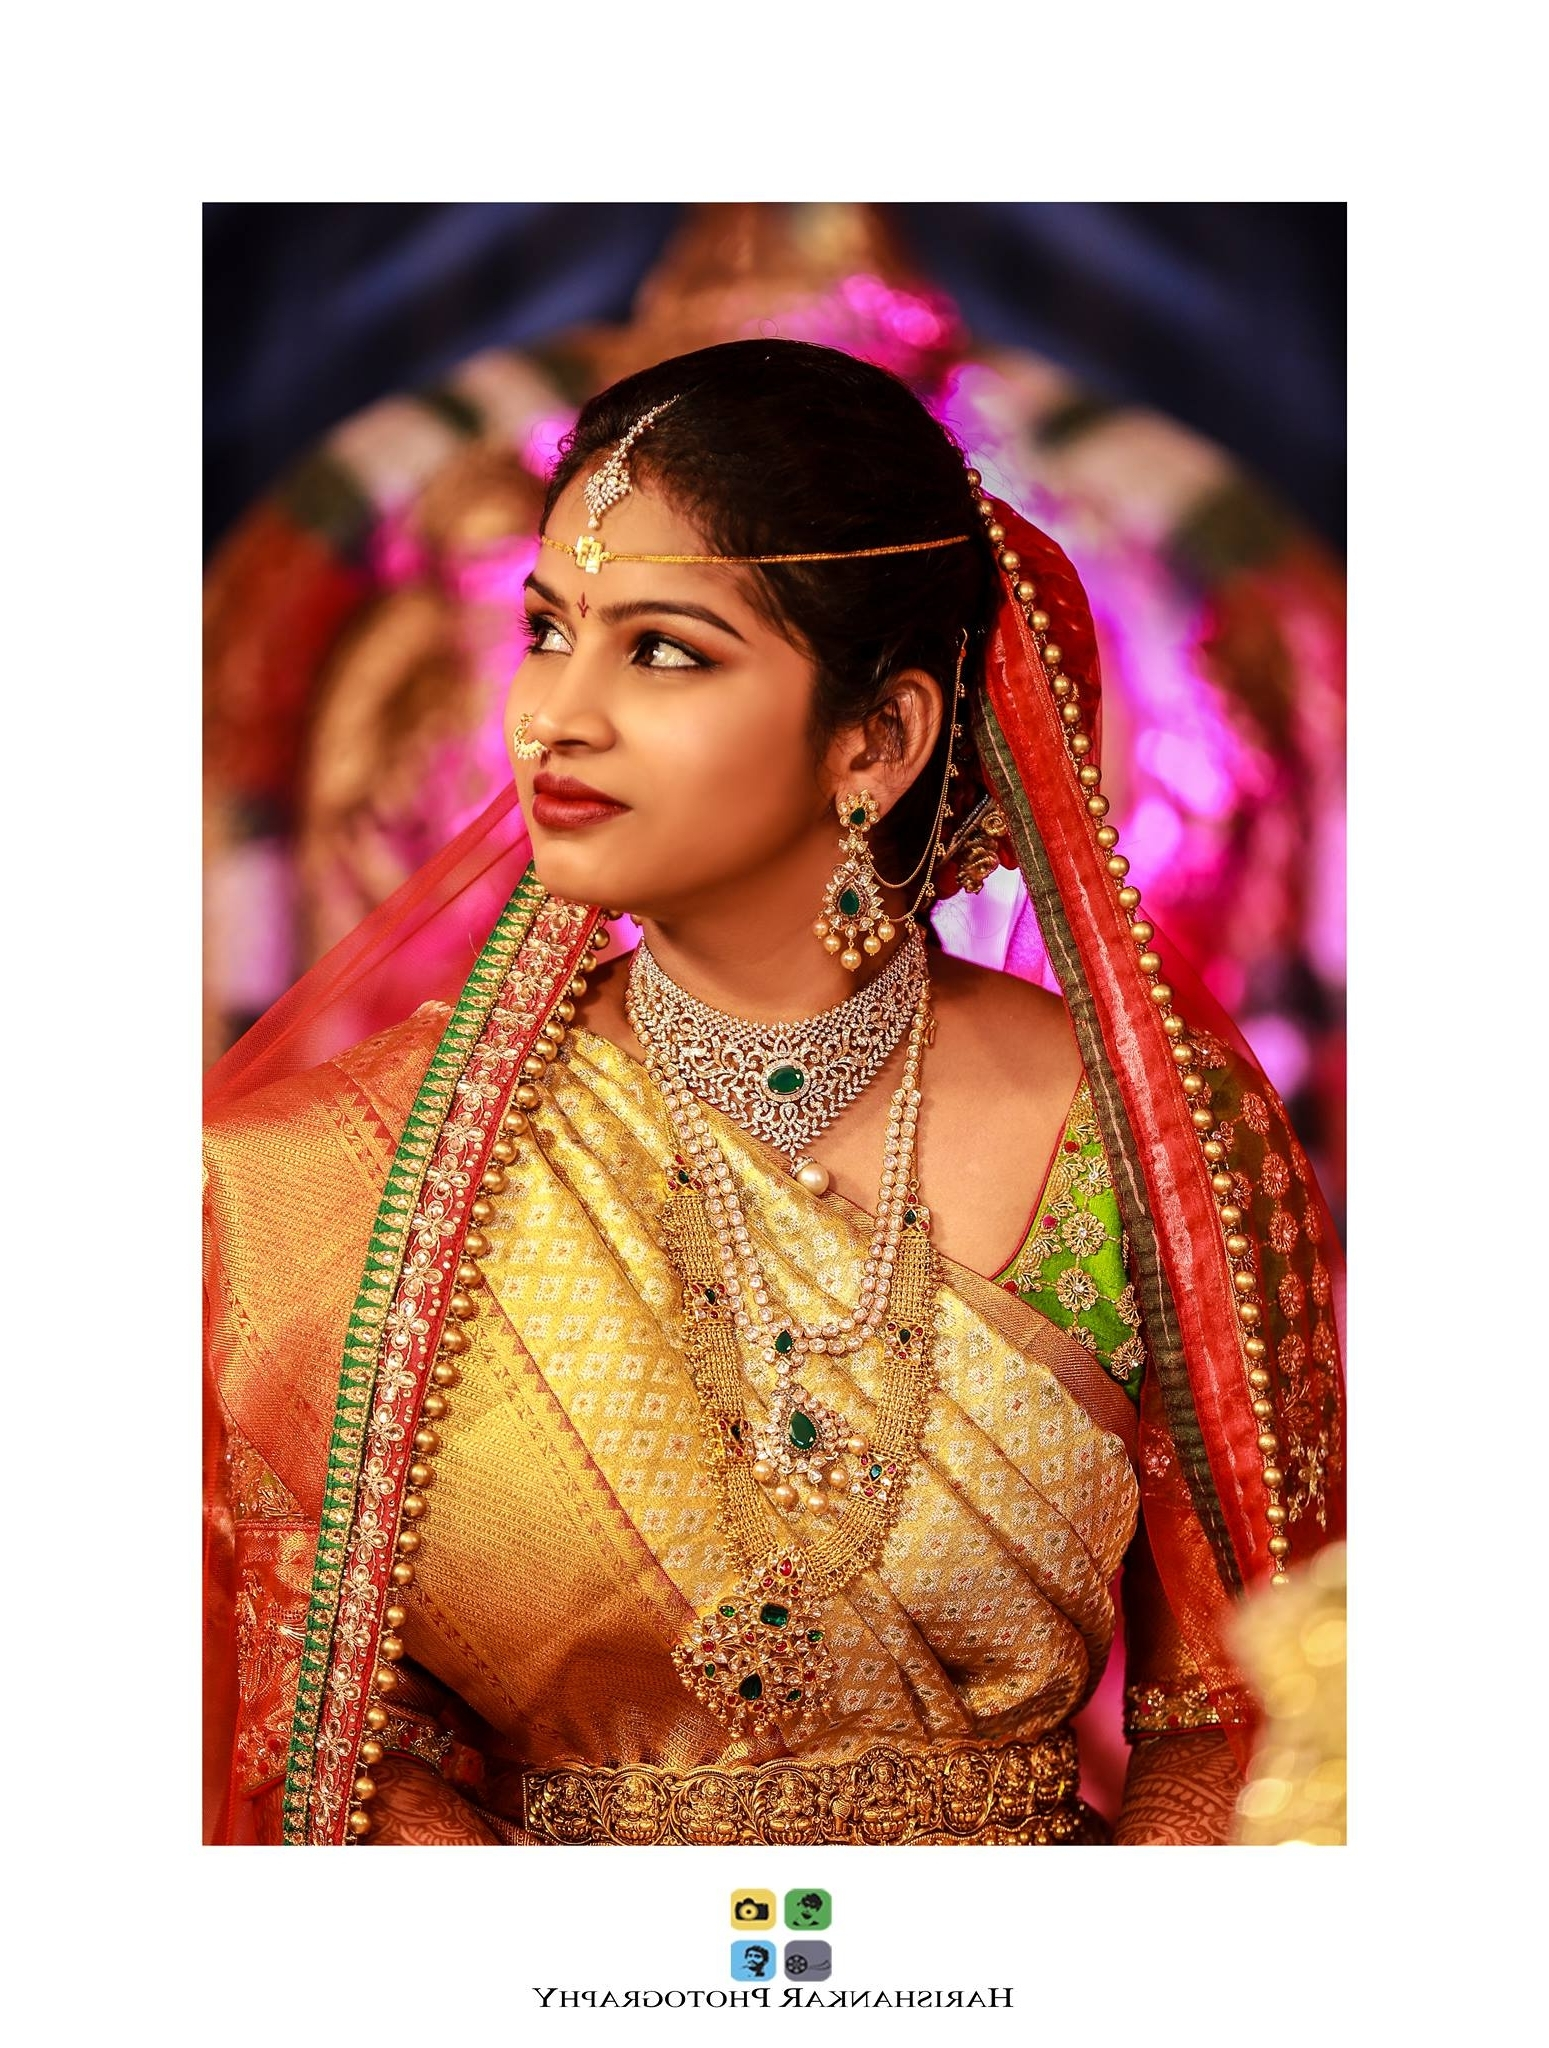 Latest South Indian Tamil Bridal Wedding Hairstyles With Classy Hairstyle For Bride South Indian Wedding With Additional (View 9 of 15)